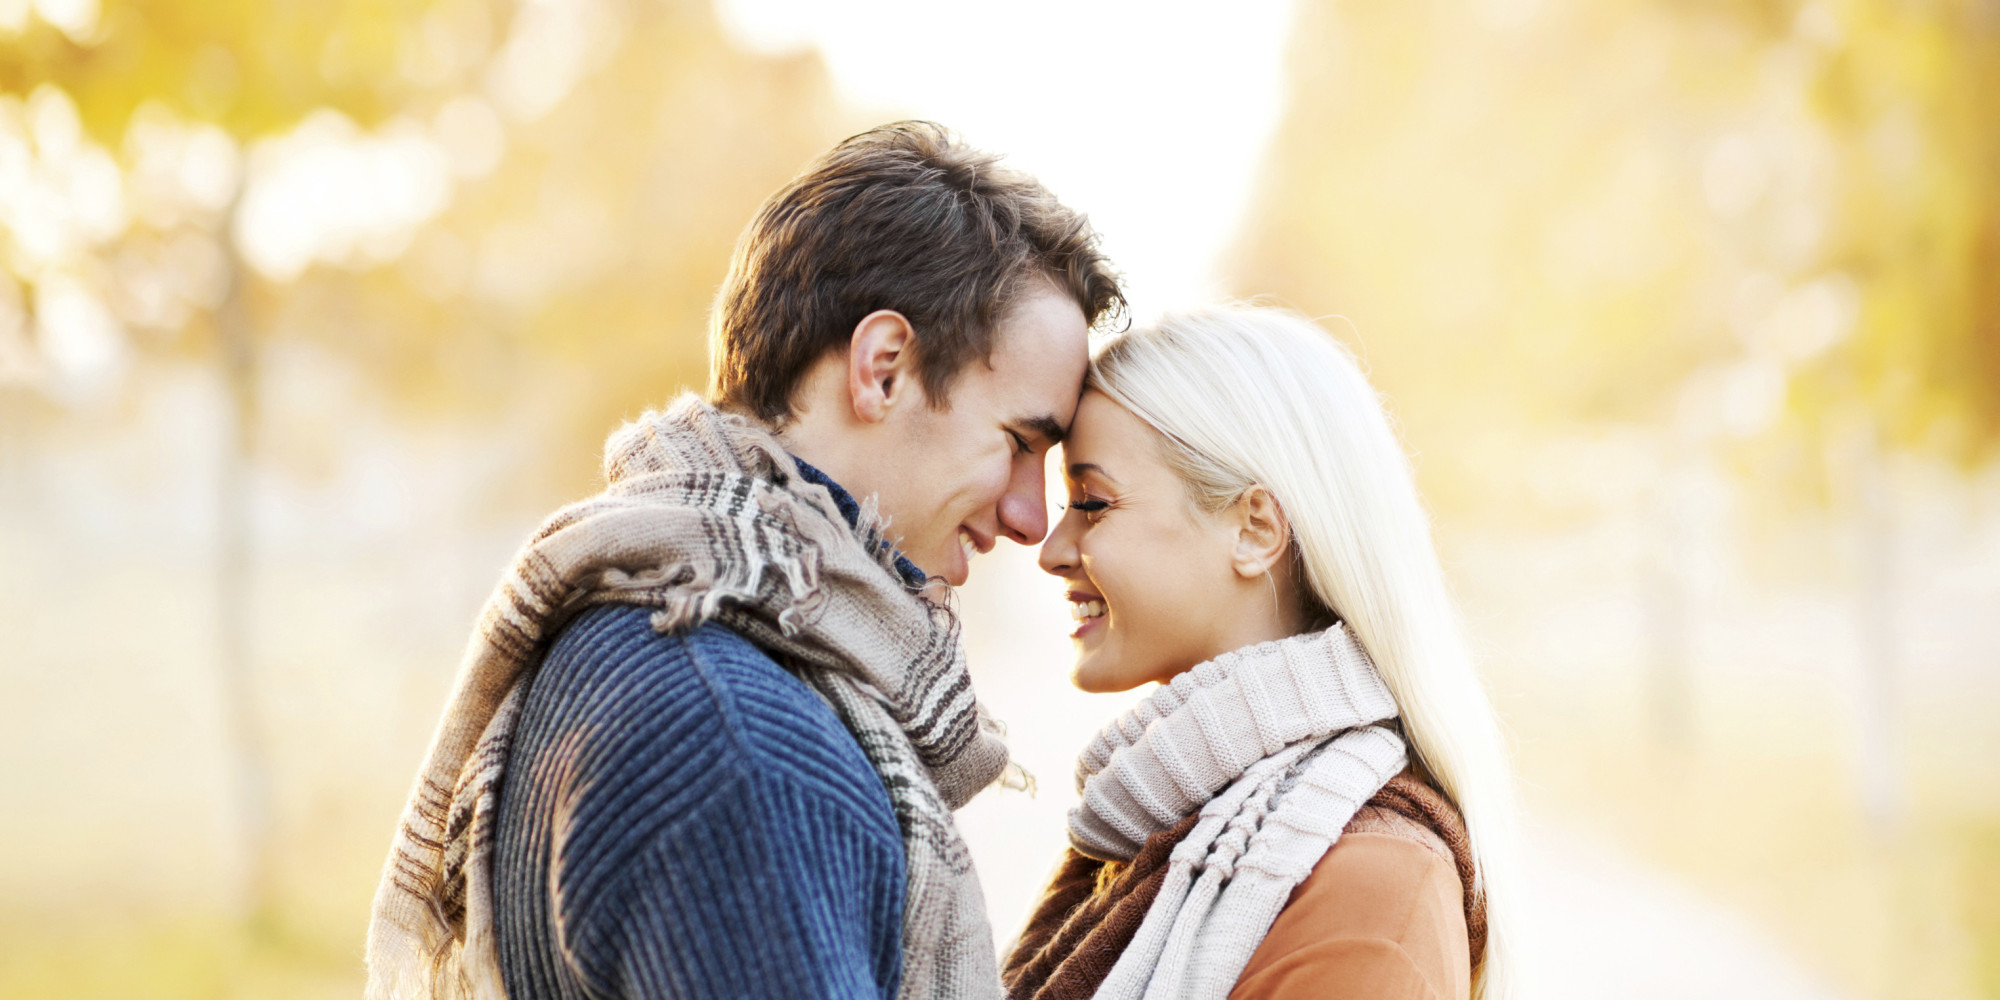 Cute Lovers Wallpapers With Quotes 10 Differences Between Finding Love In A Romance Novel And